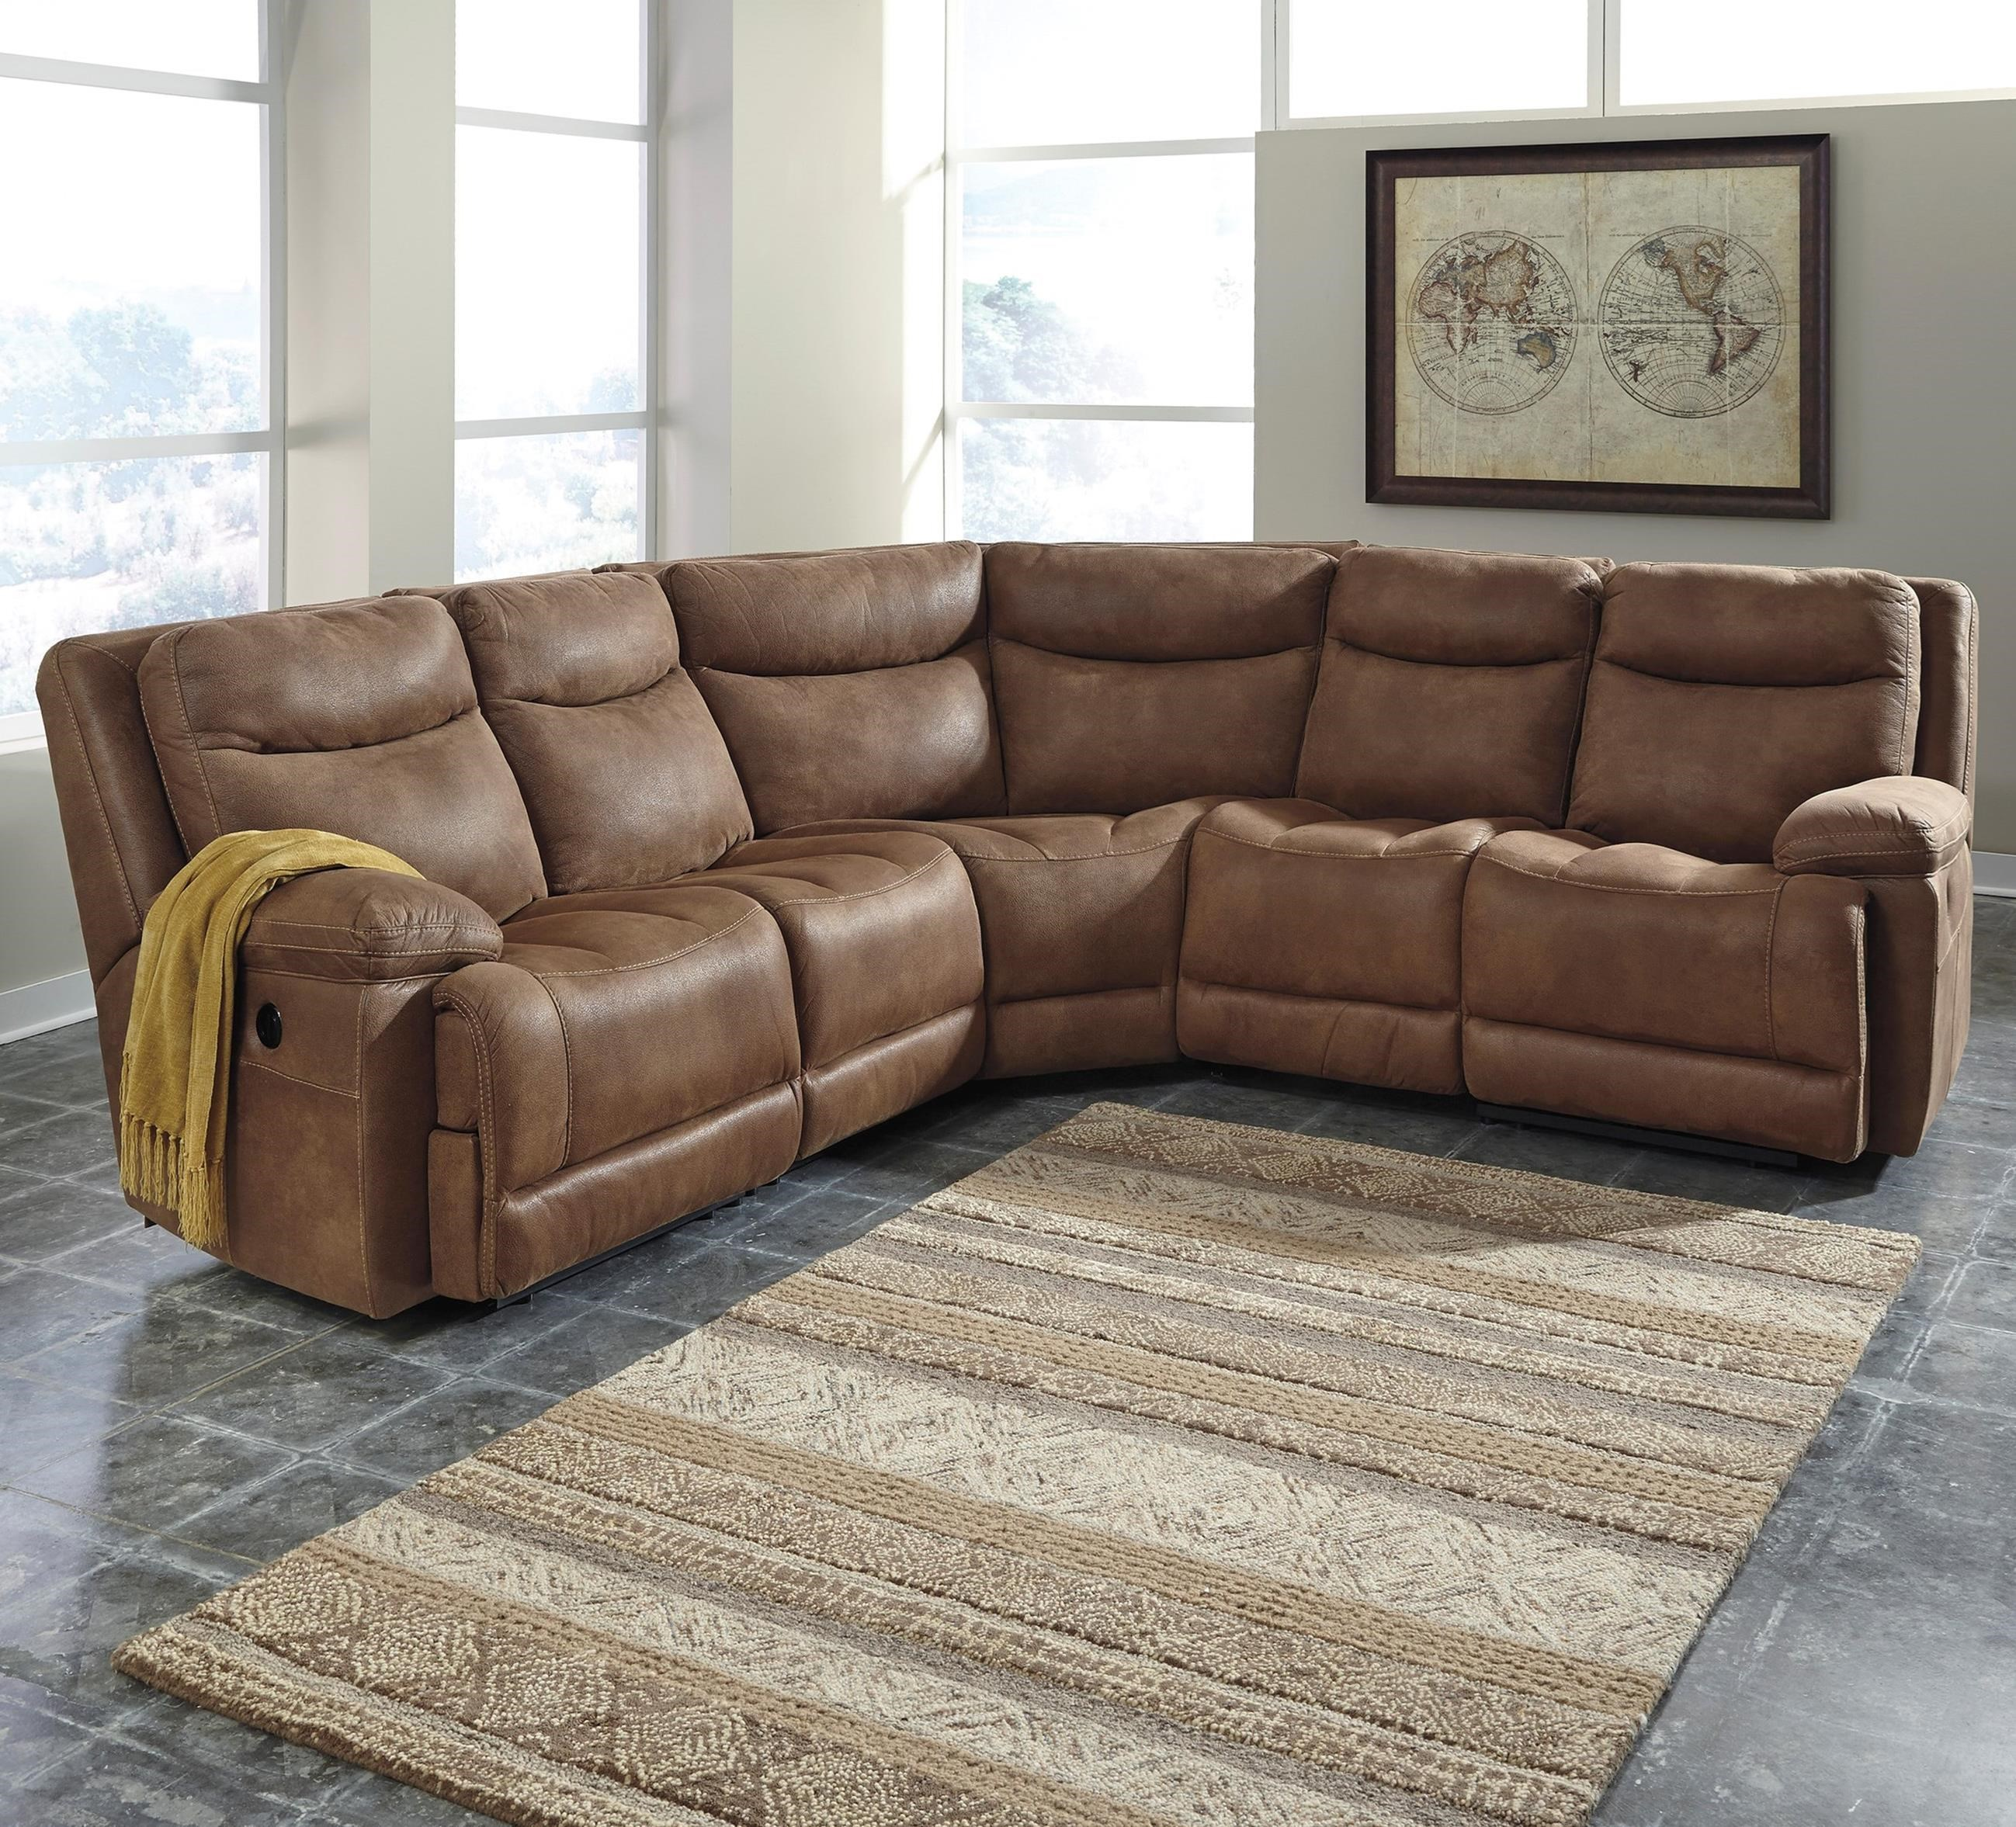 Reclining sectional st malo 6piece power reclining for Ashley encore grain chaise